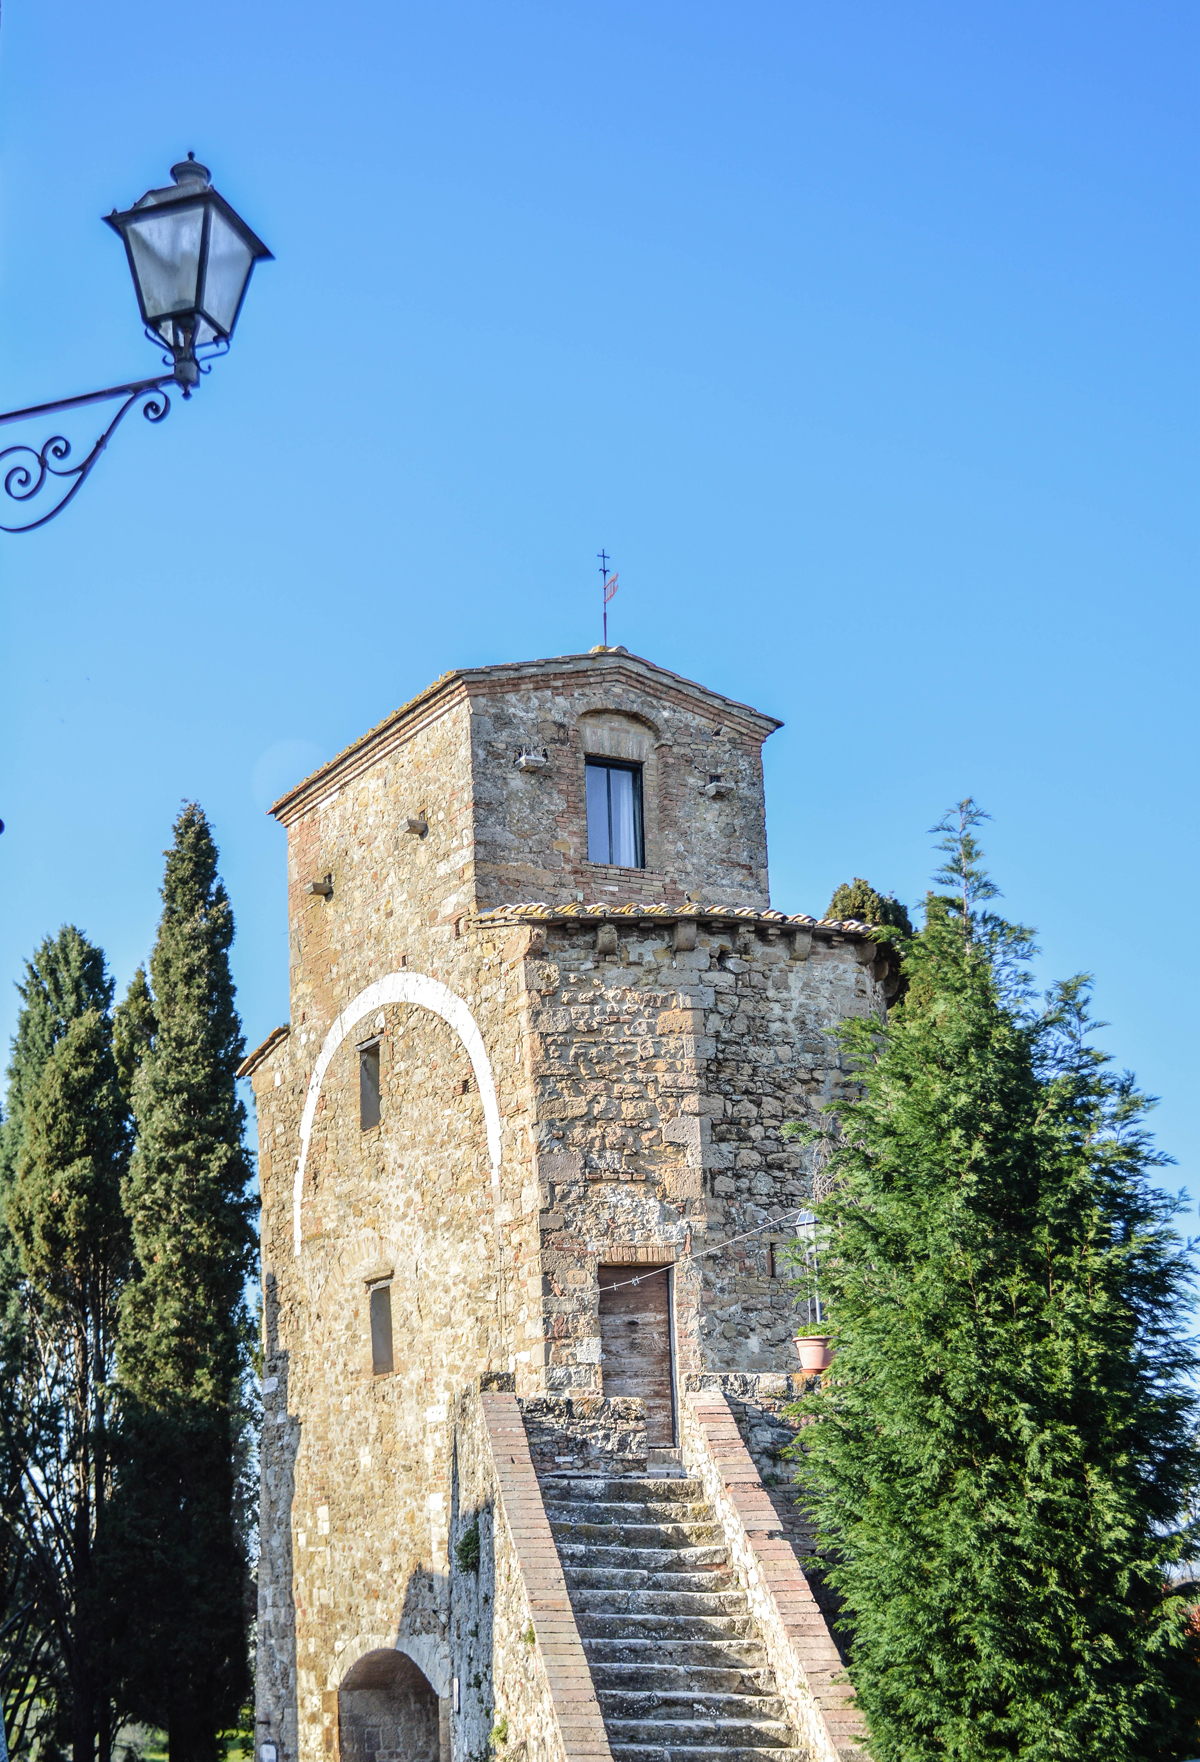 53 #WhereToGo : Val d'Orcia in Tuscany